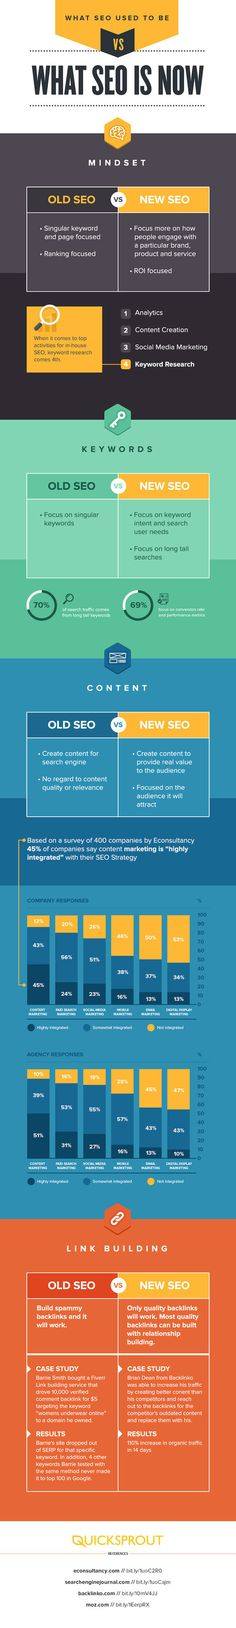 What SEO Used to Be Versus What SEO Is Now - QuickSprout | The Marketing Technology Alert | Scoop.it